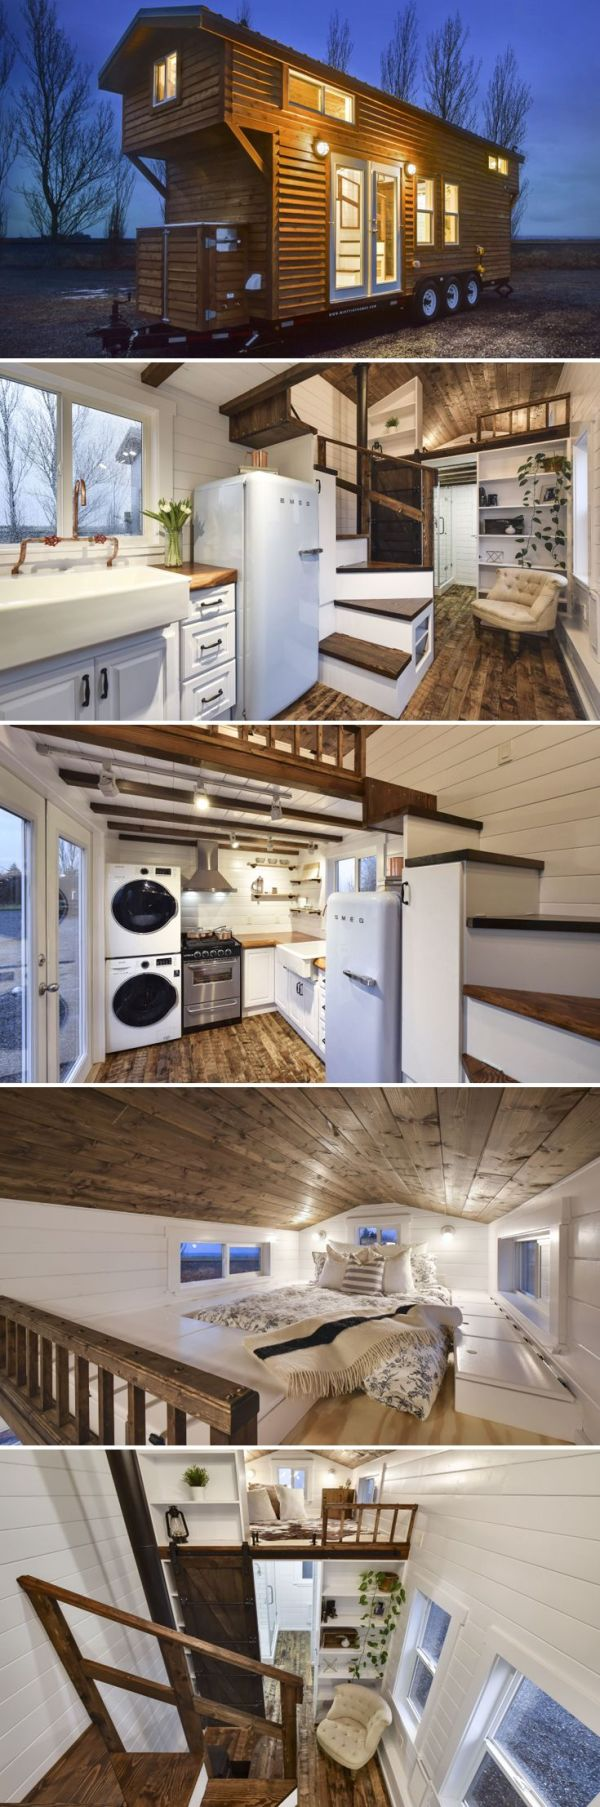 25 best ideas about Tiny house exterior on Pinterest